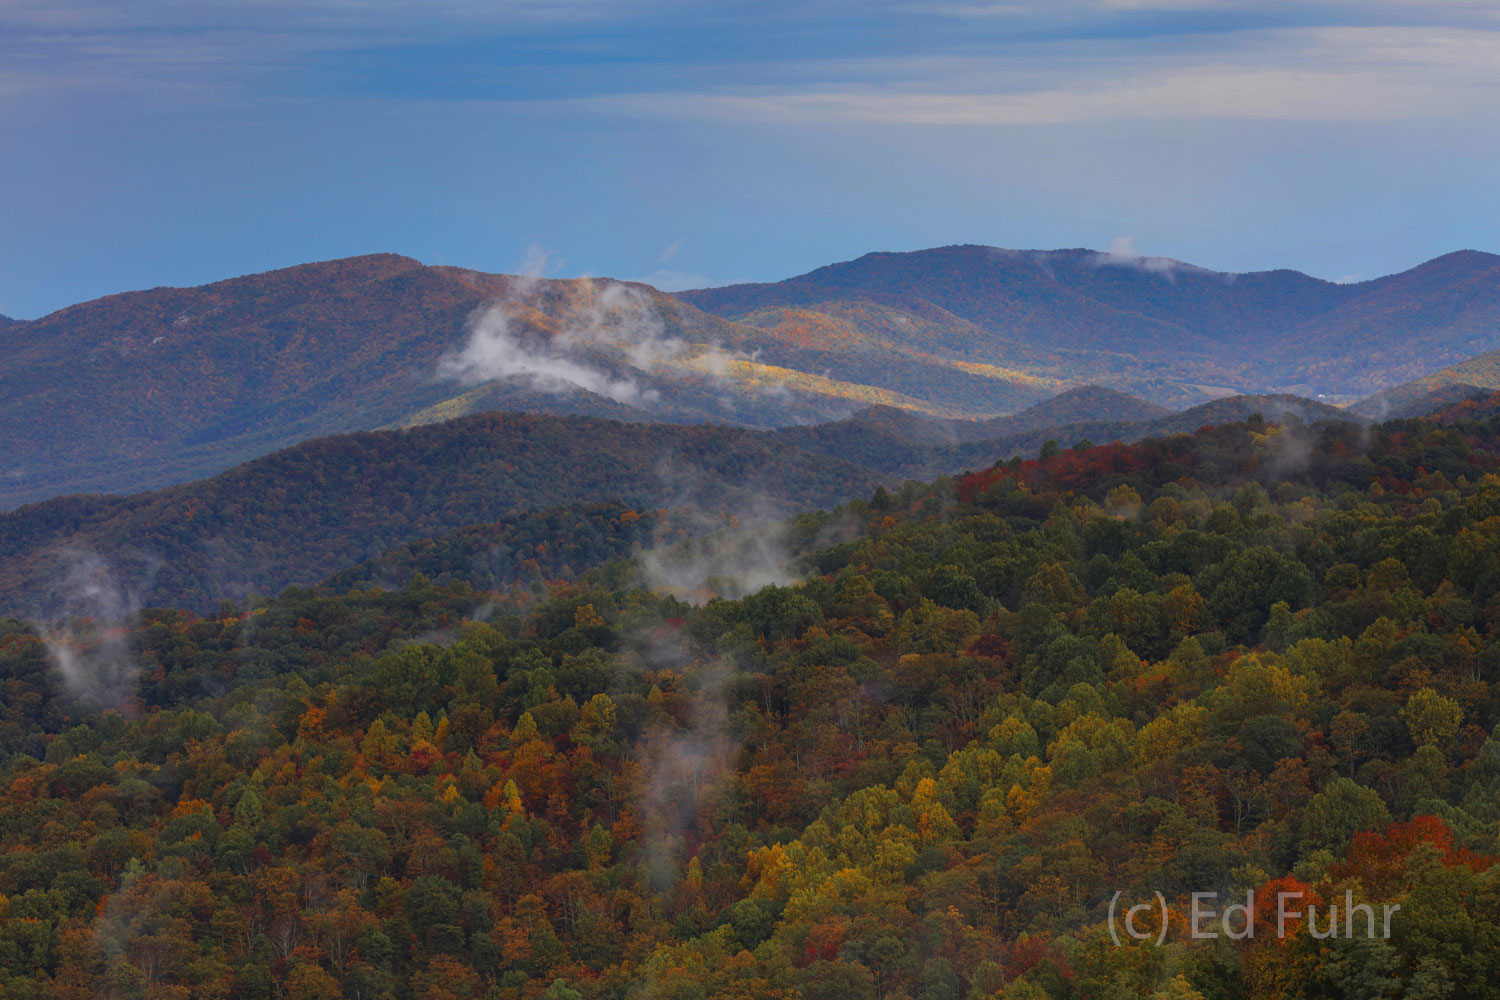 In the south district, fall's colors flow from the mountain slopes into the Shenandoah valley below.